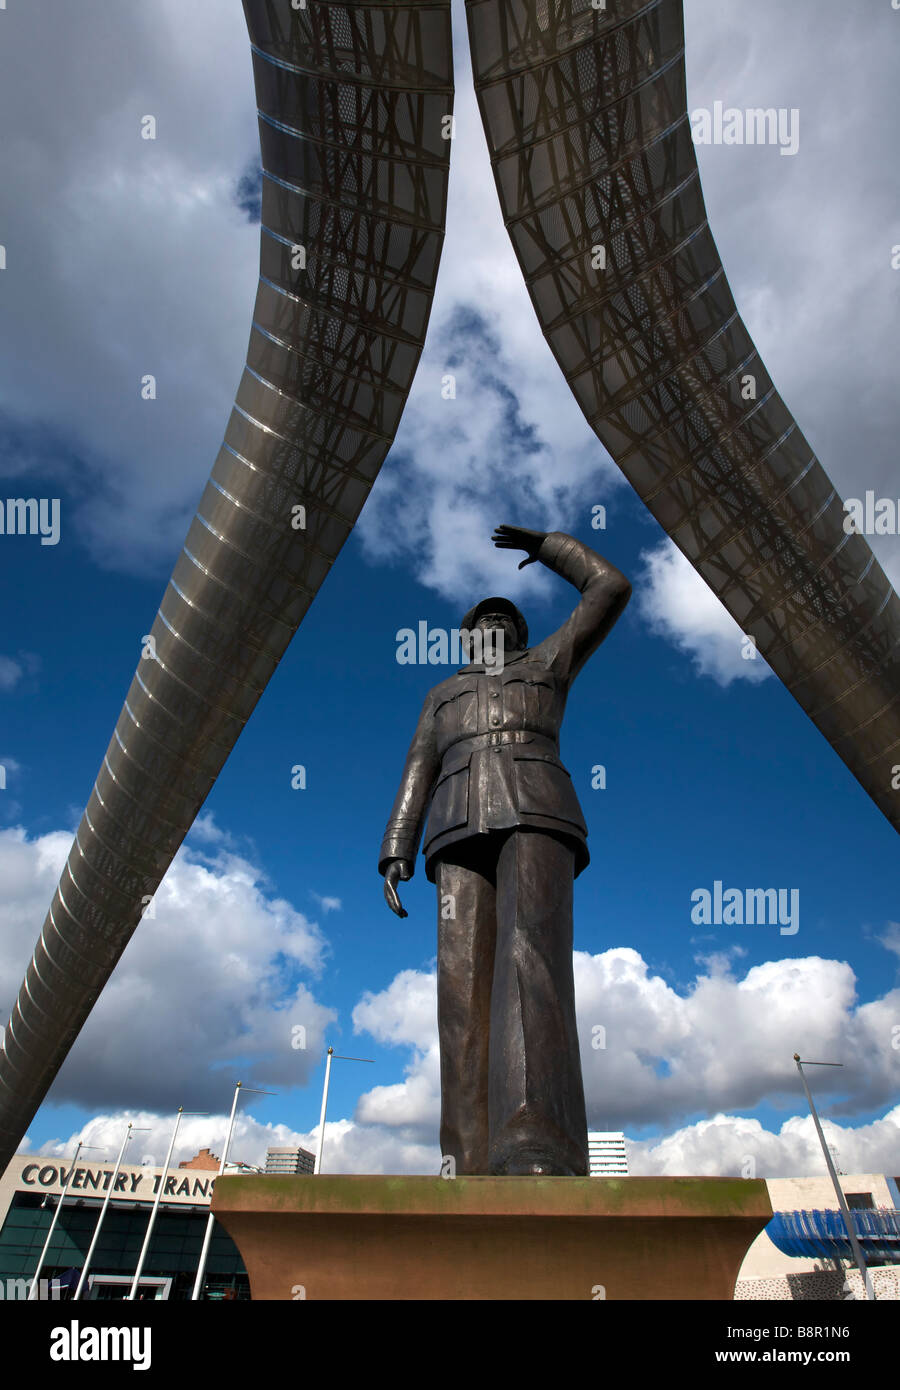 Sir Frank Whittle Sculpture Millennium Place Coventry West Midlands England UK - Stock Image